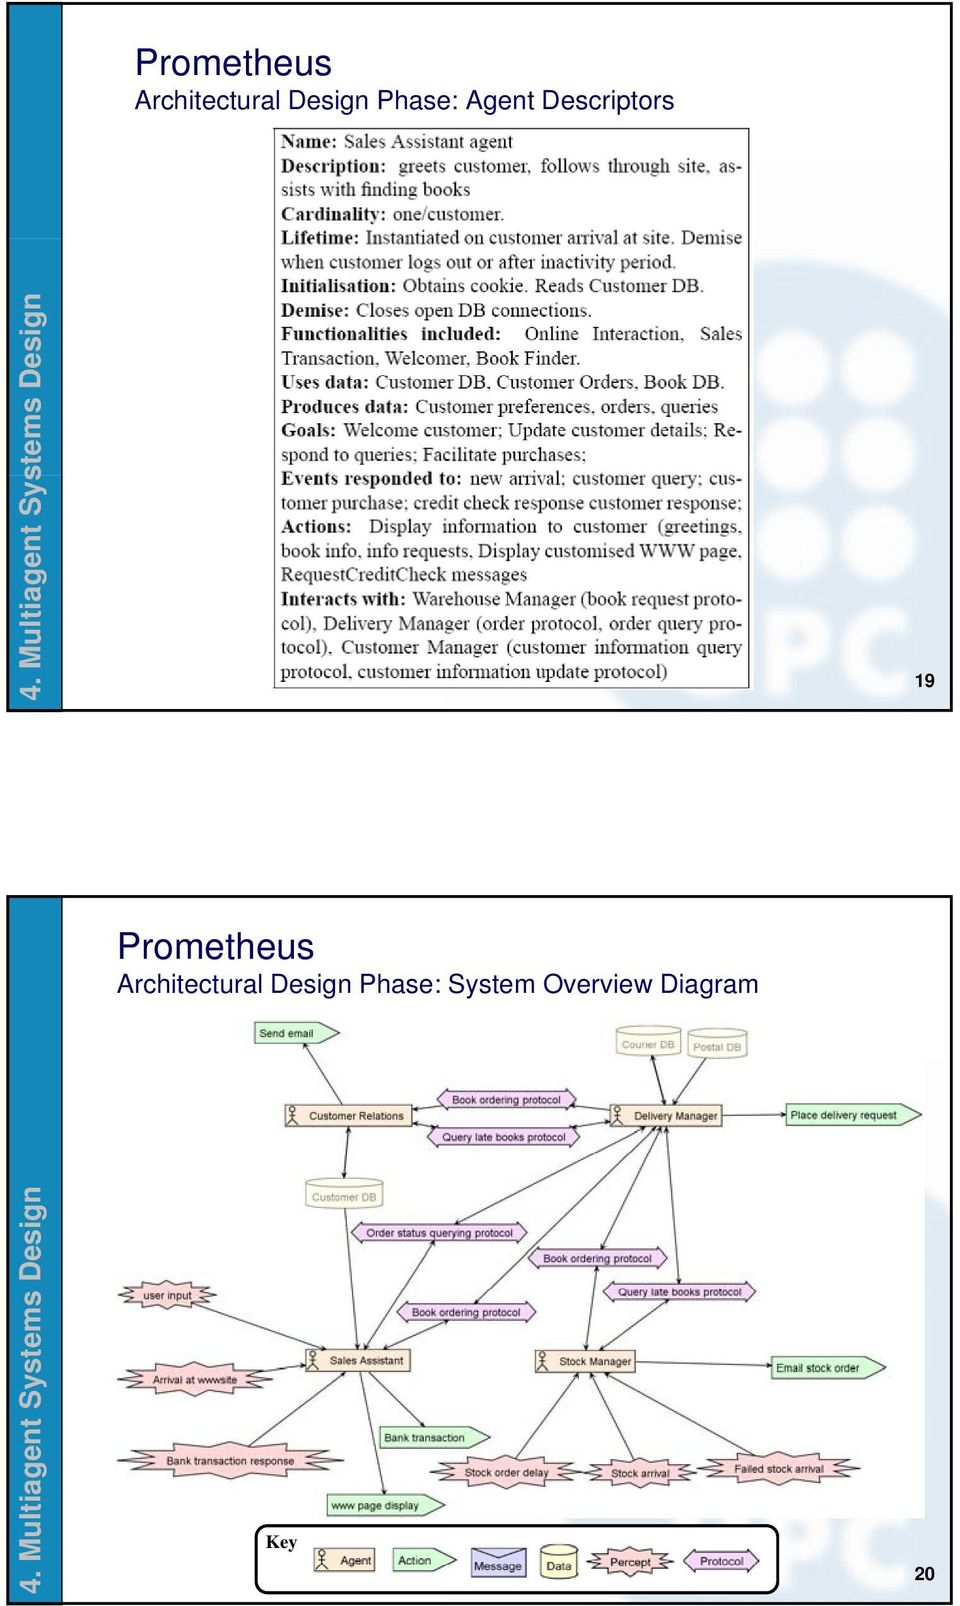 edu 19 Architectural Design Phase: System Overview